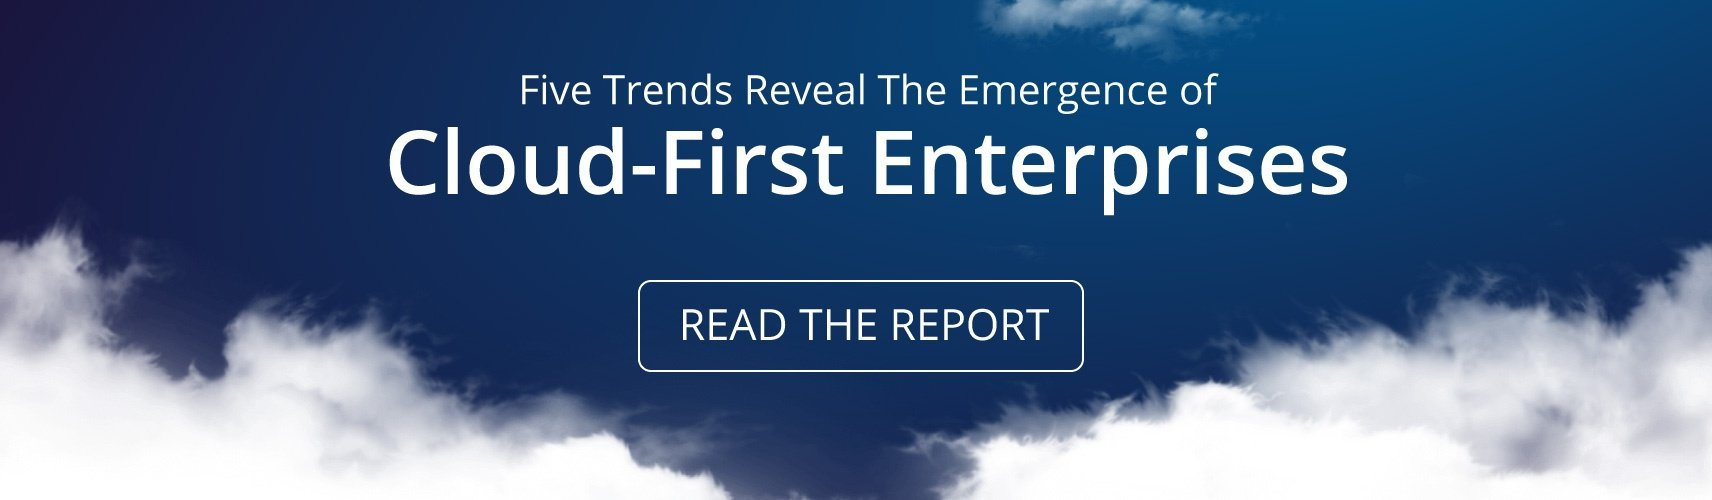 Report: Five Trends Reveal The Emergence of Cloud-First Enterprises